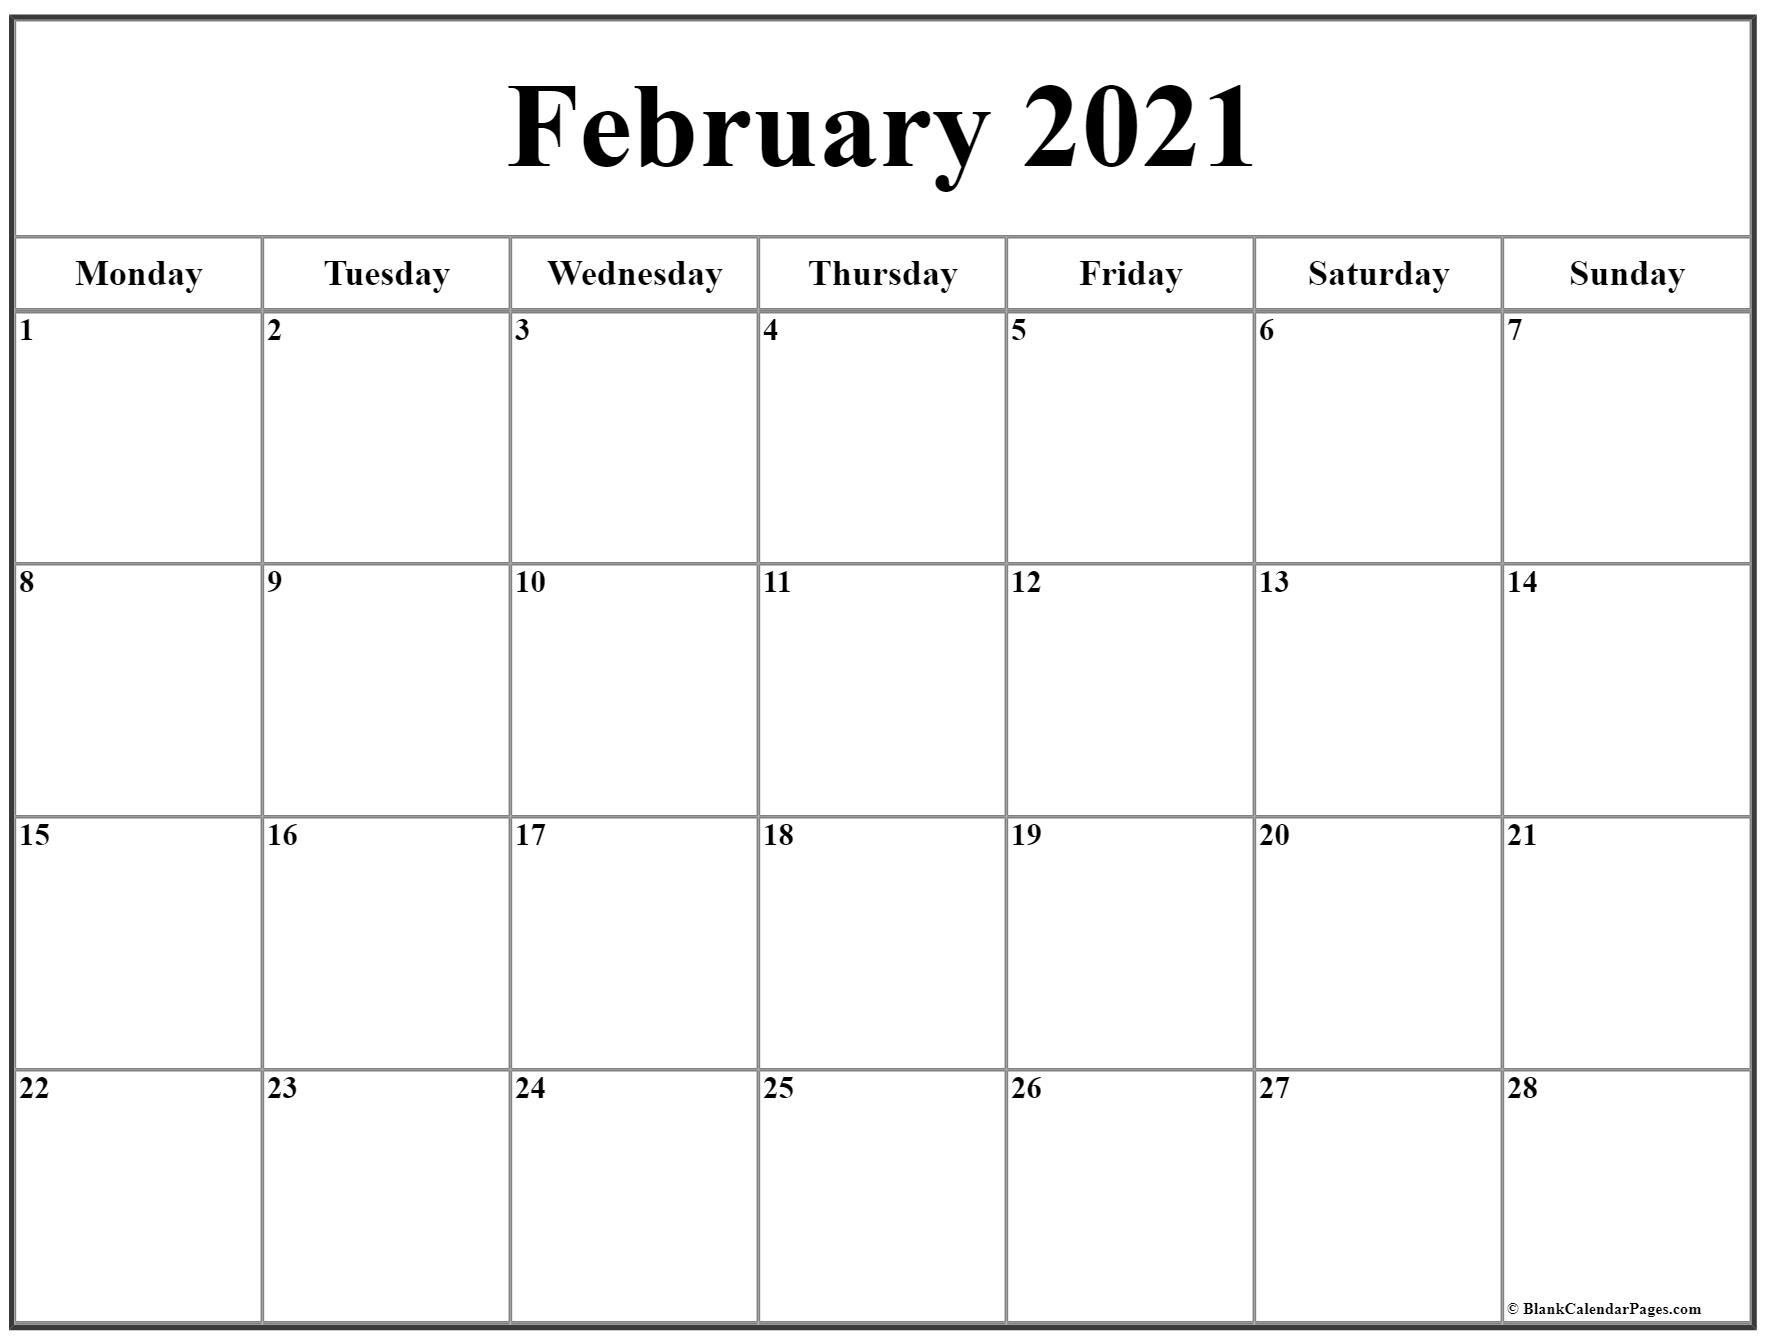 February 2021 Monday Calendar | Monday To Sunday